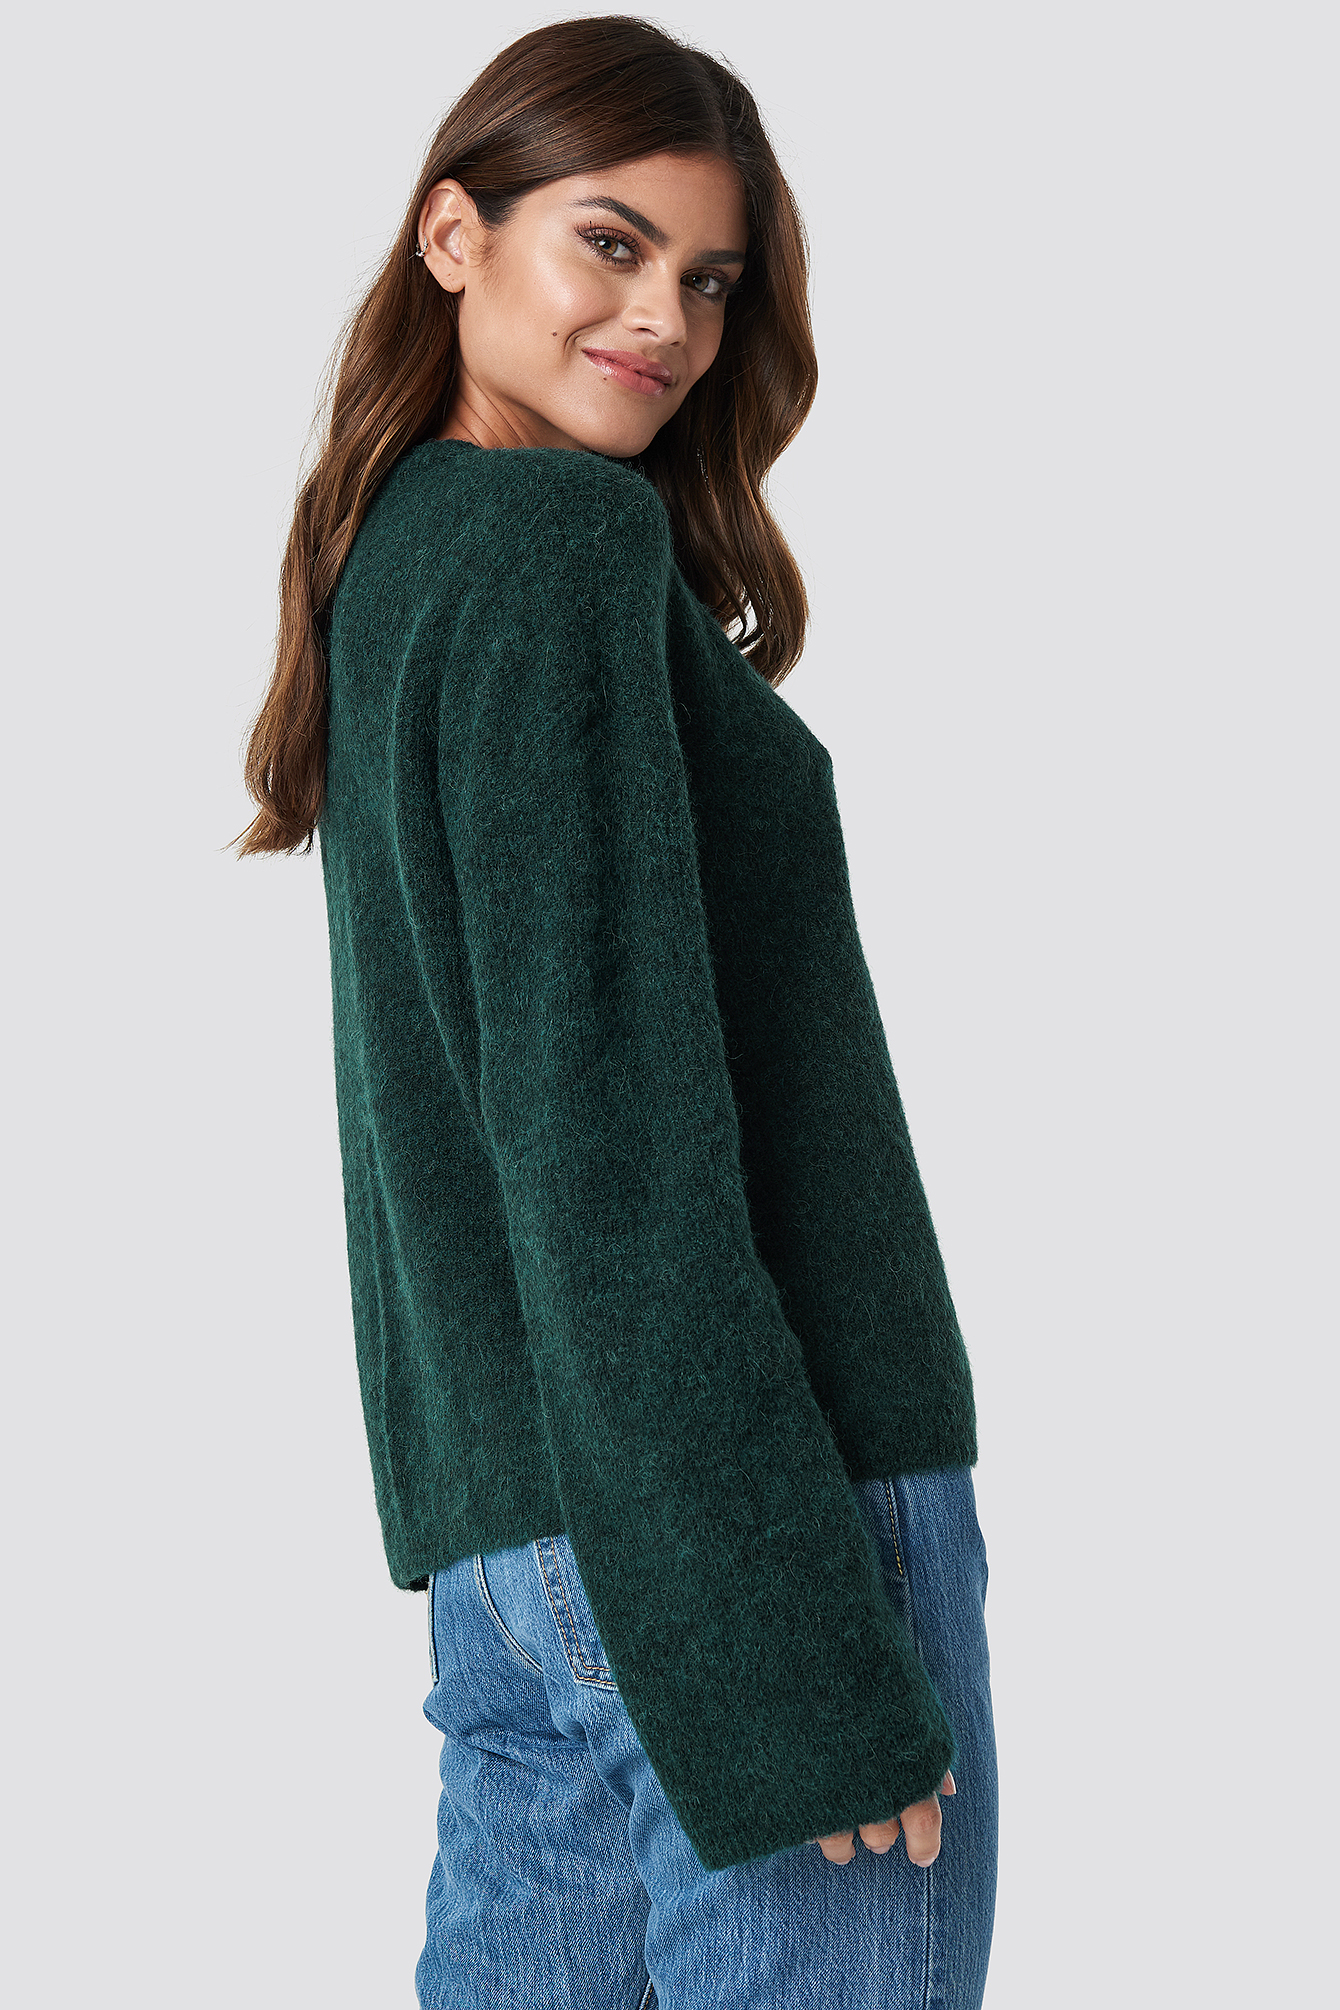 Alpaca Wool Blend Round Neck Sweater NA-KD.COM